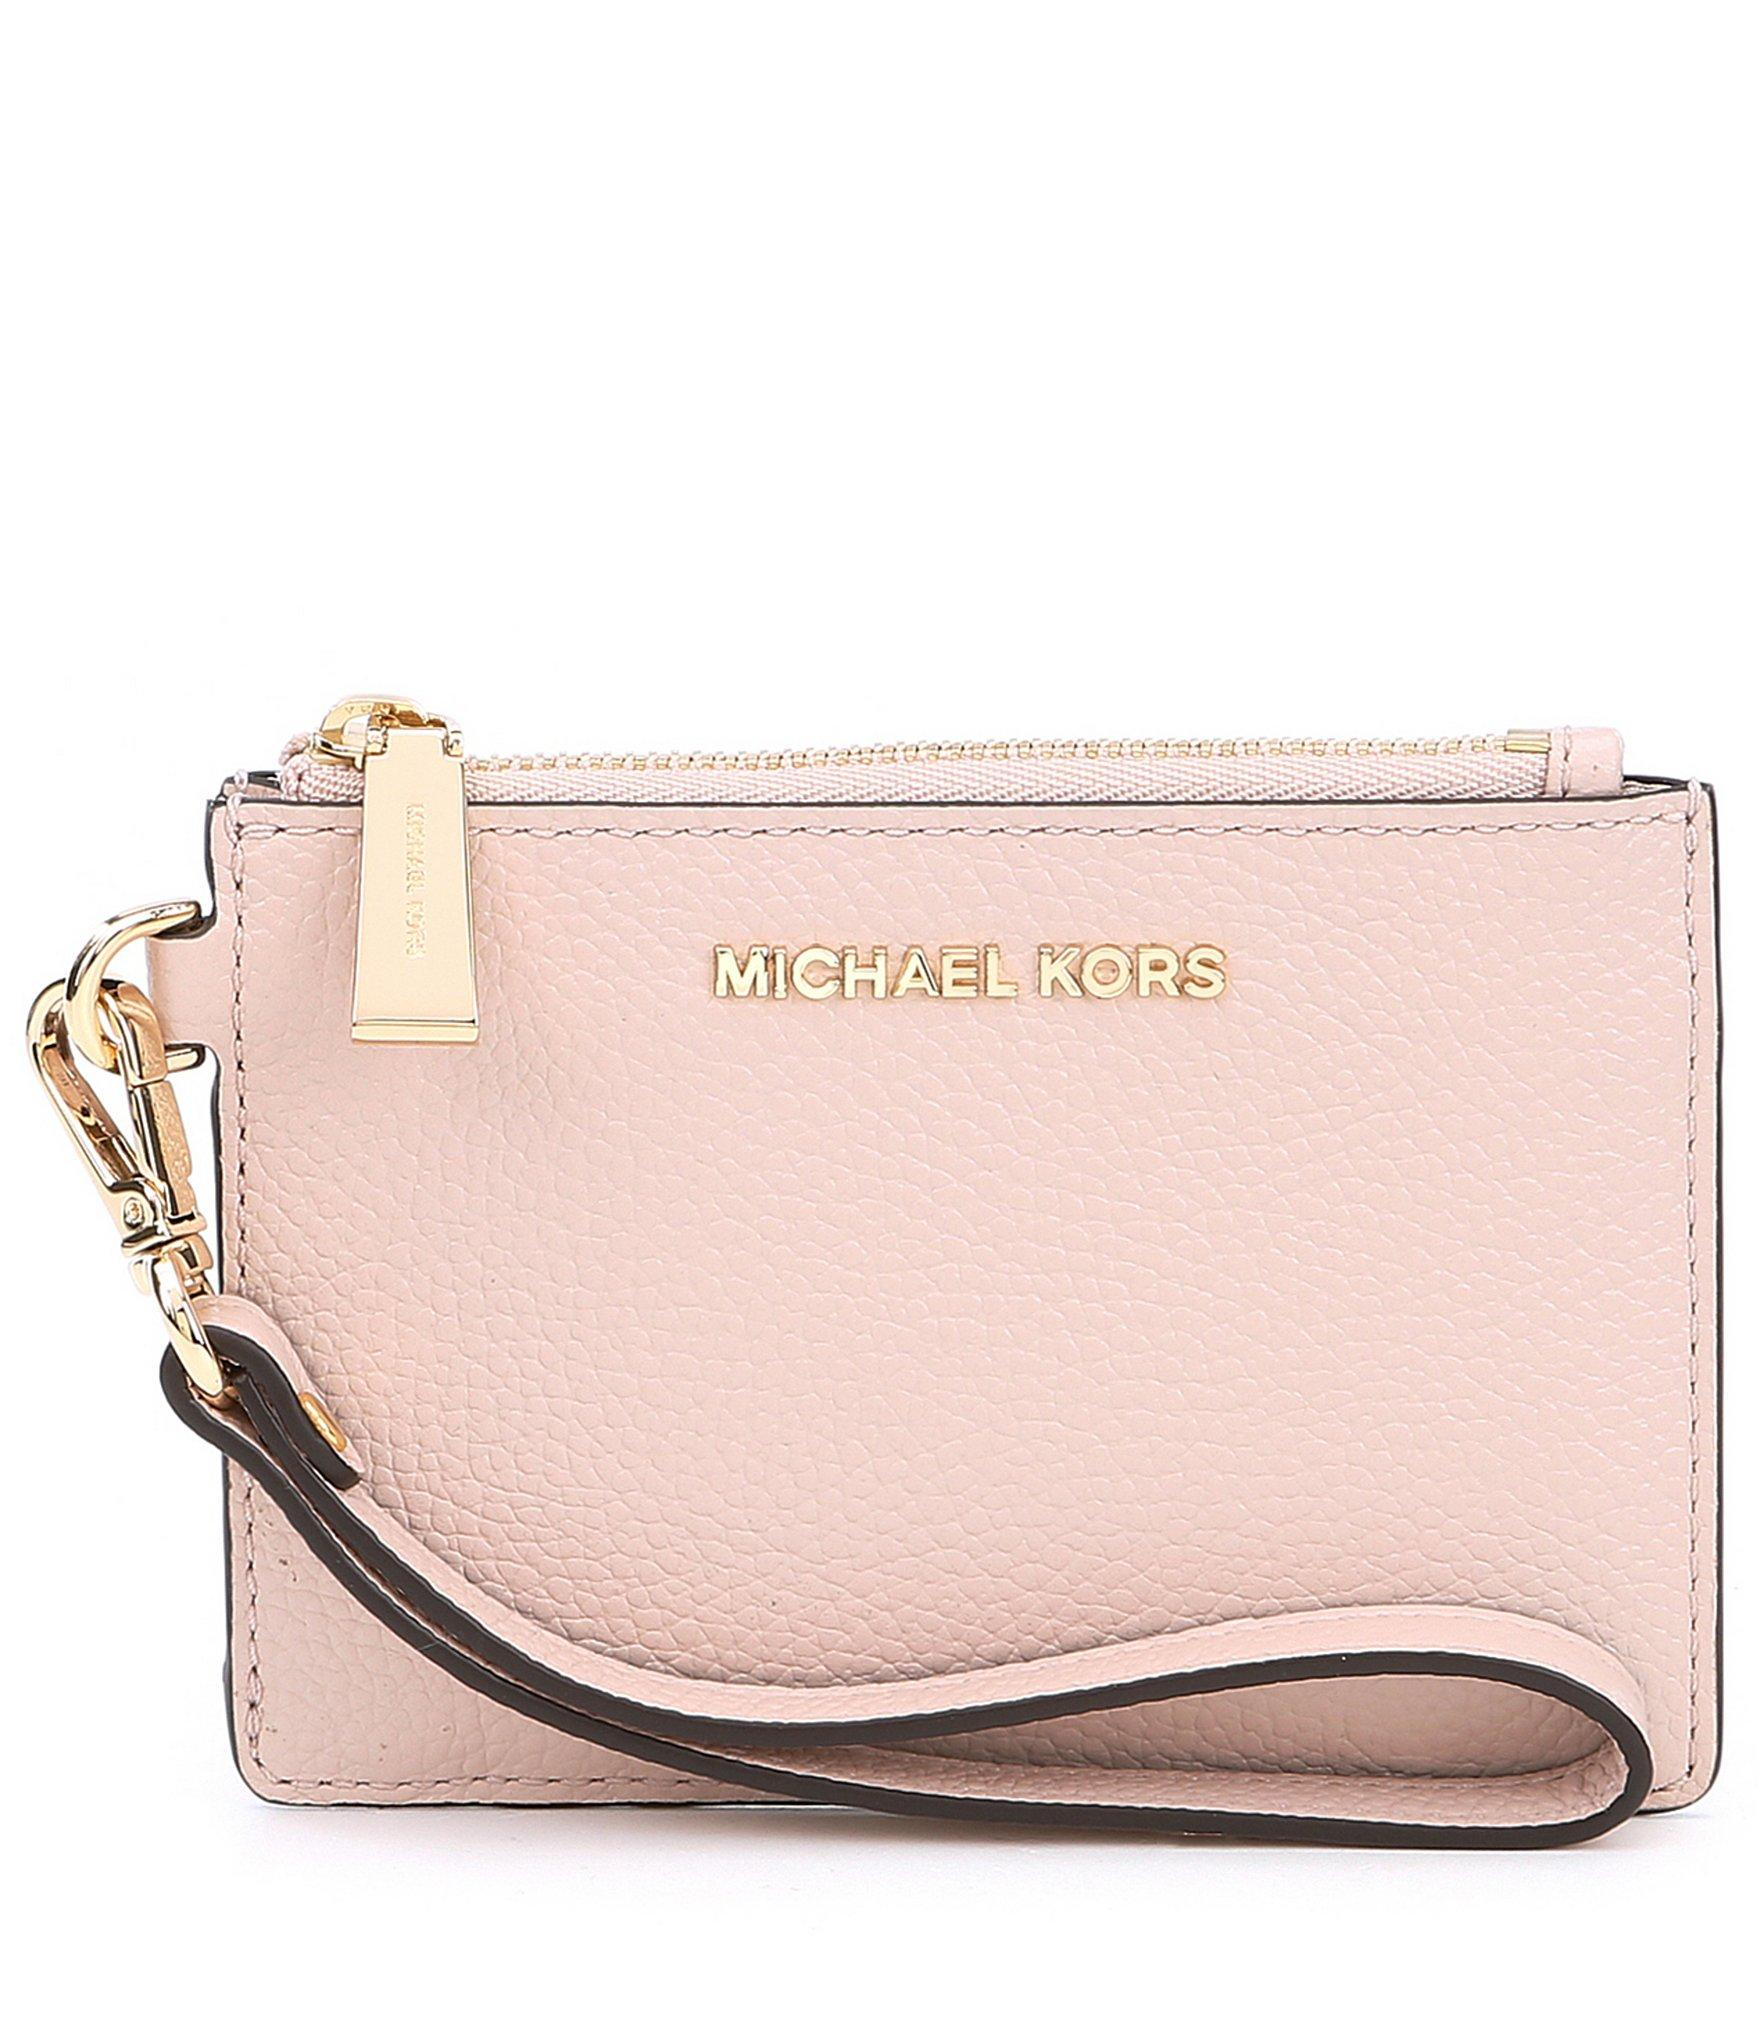 6bcde6d28a50 Lyst - MICHAEL Michael Kors Mercer Small Coin Purse in Pink